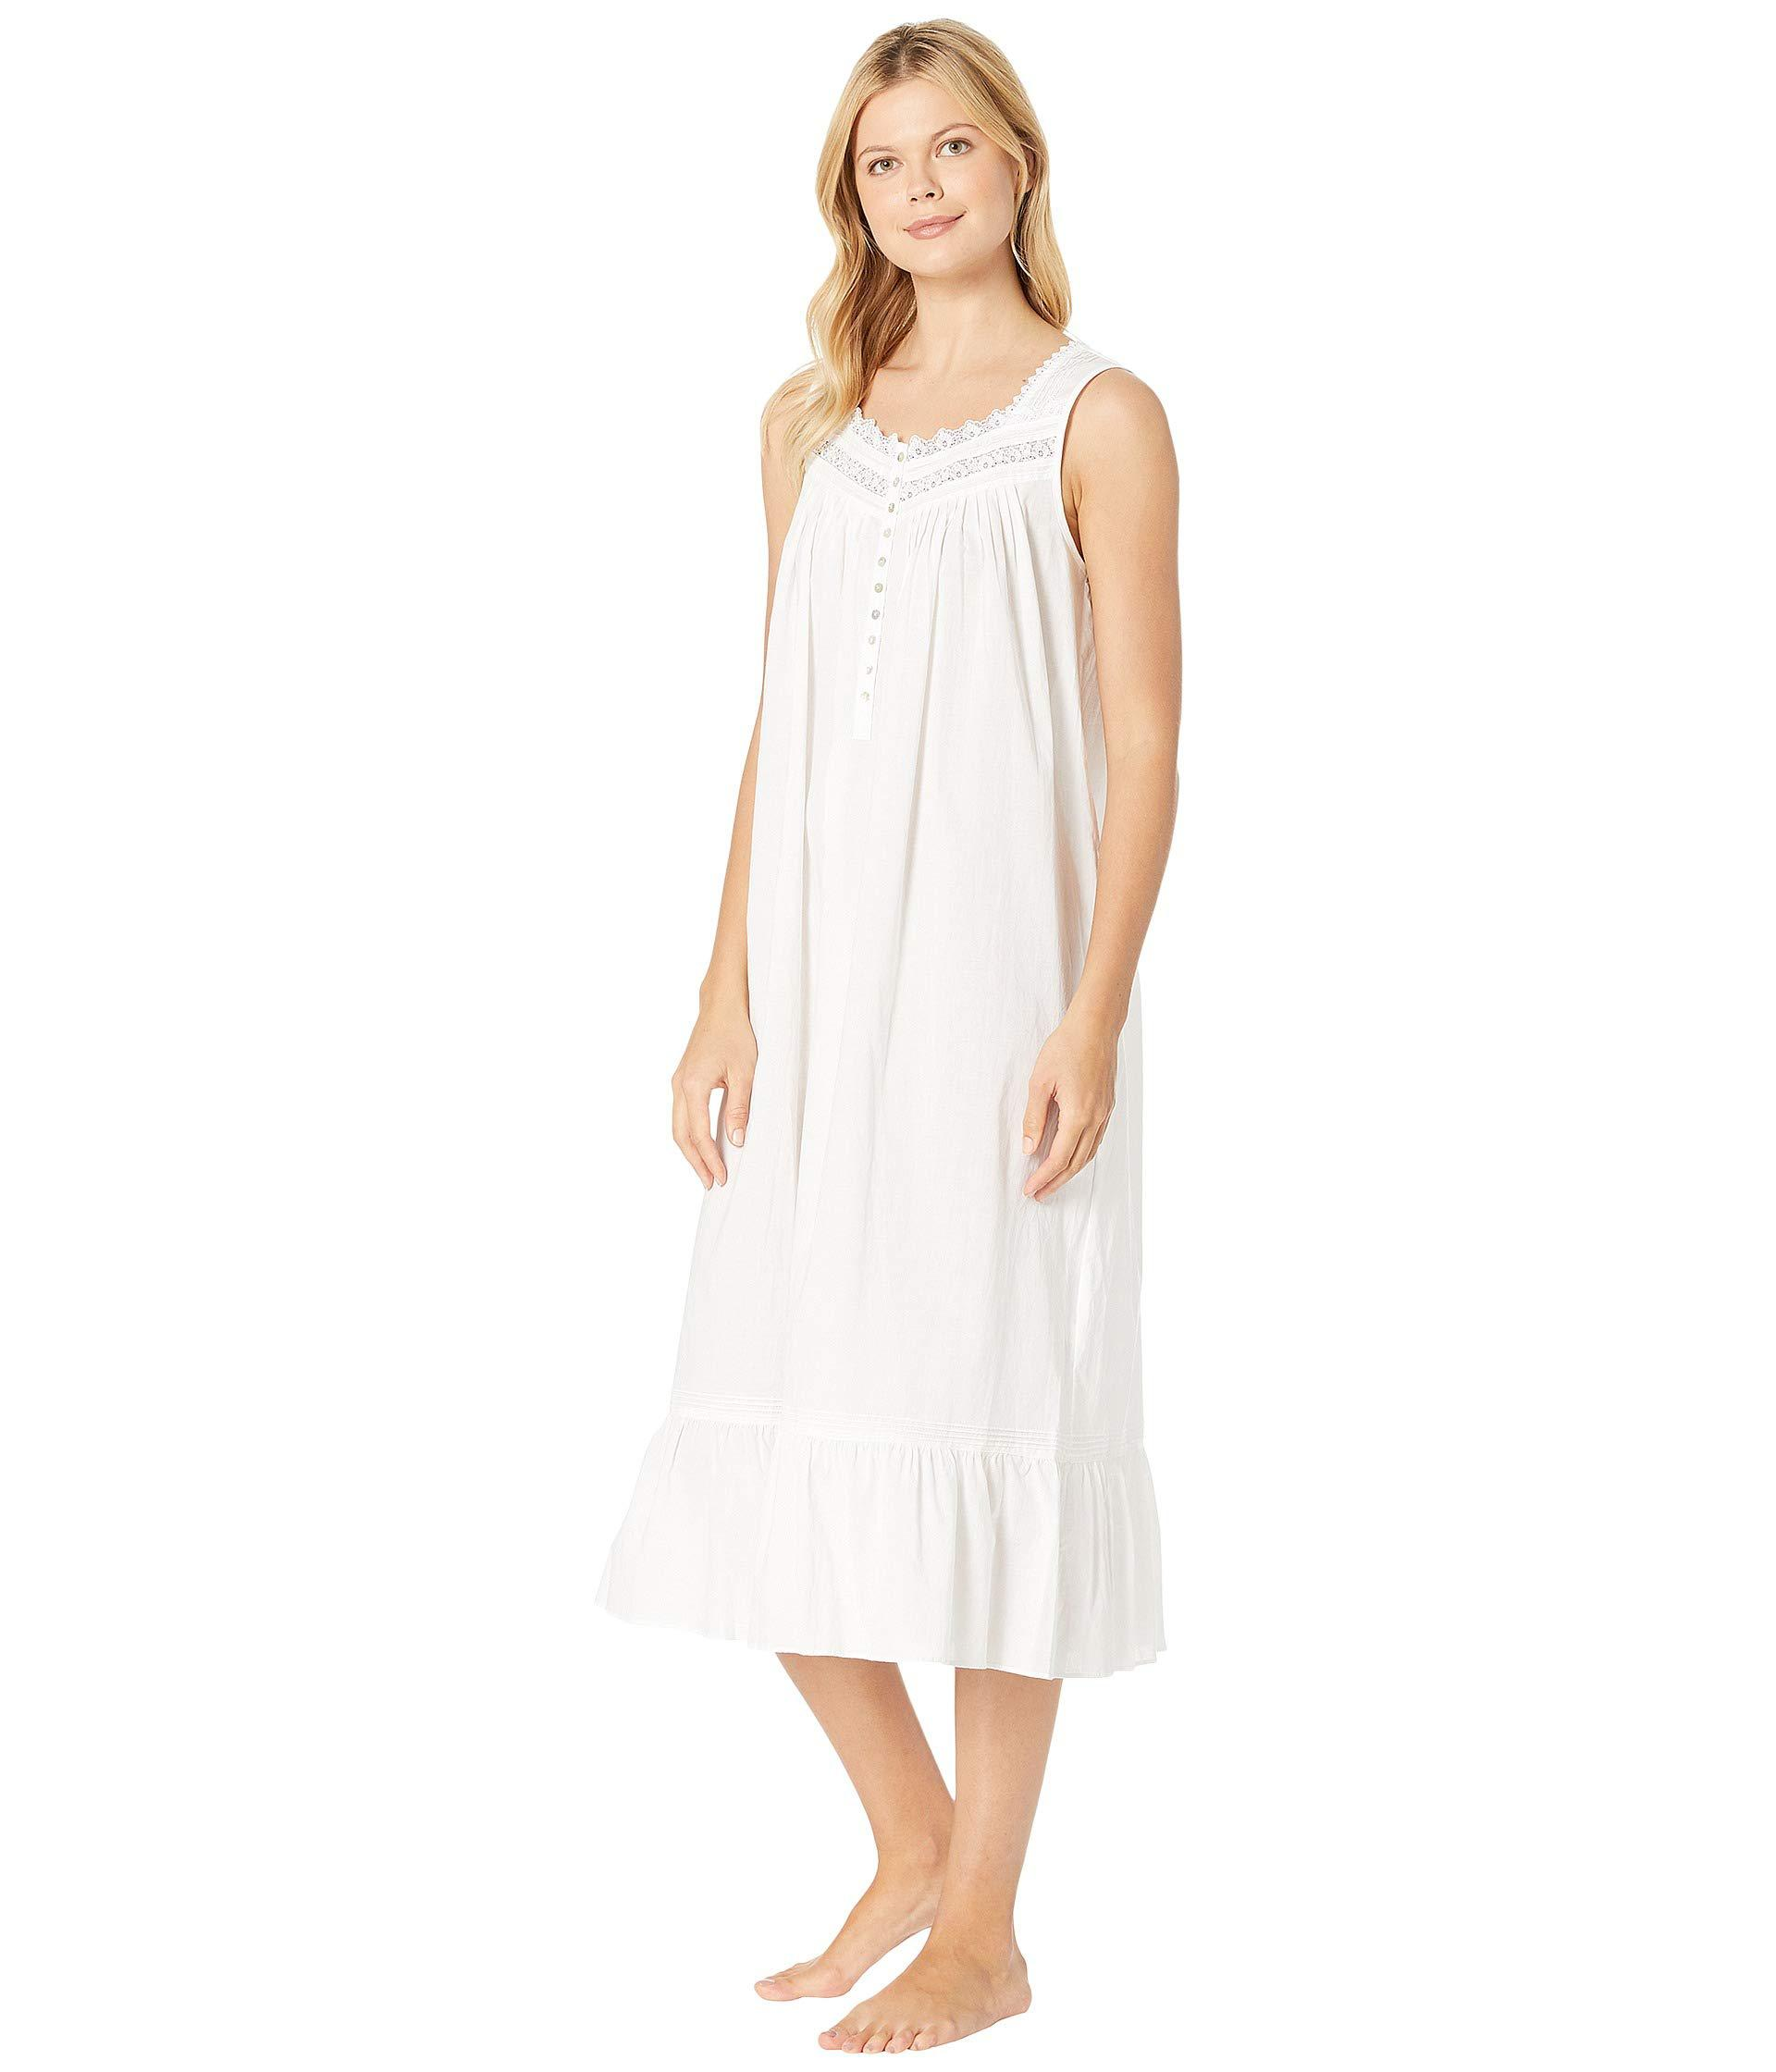 Lyst - Eileen West Cotton Lawn Ballet Nightgown (white Ground viney Floral)  Women s Pajama in White 17f942b0f